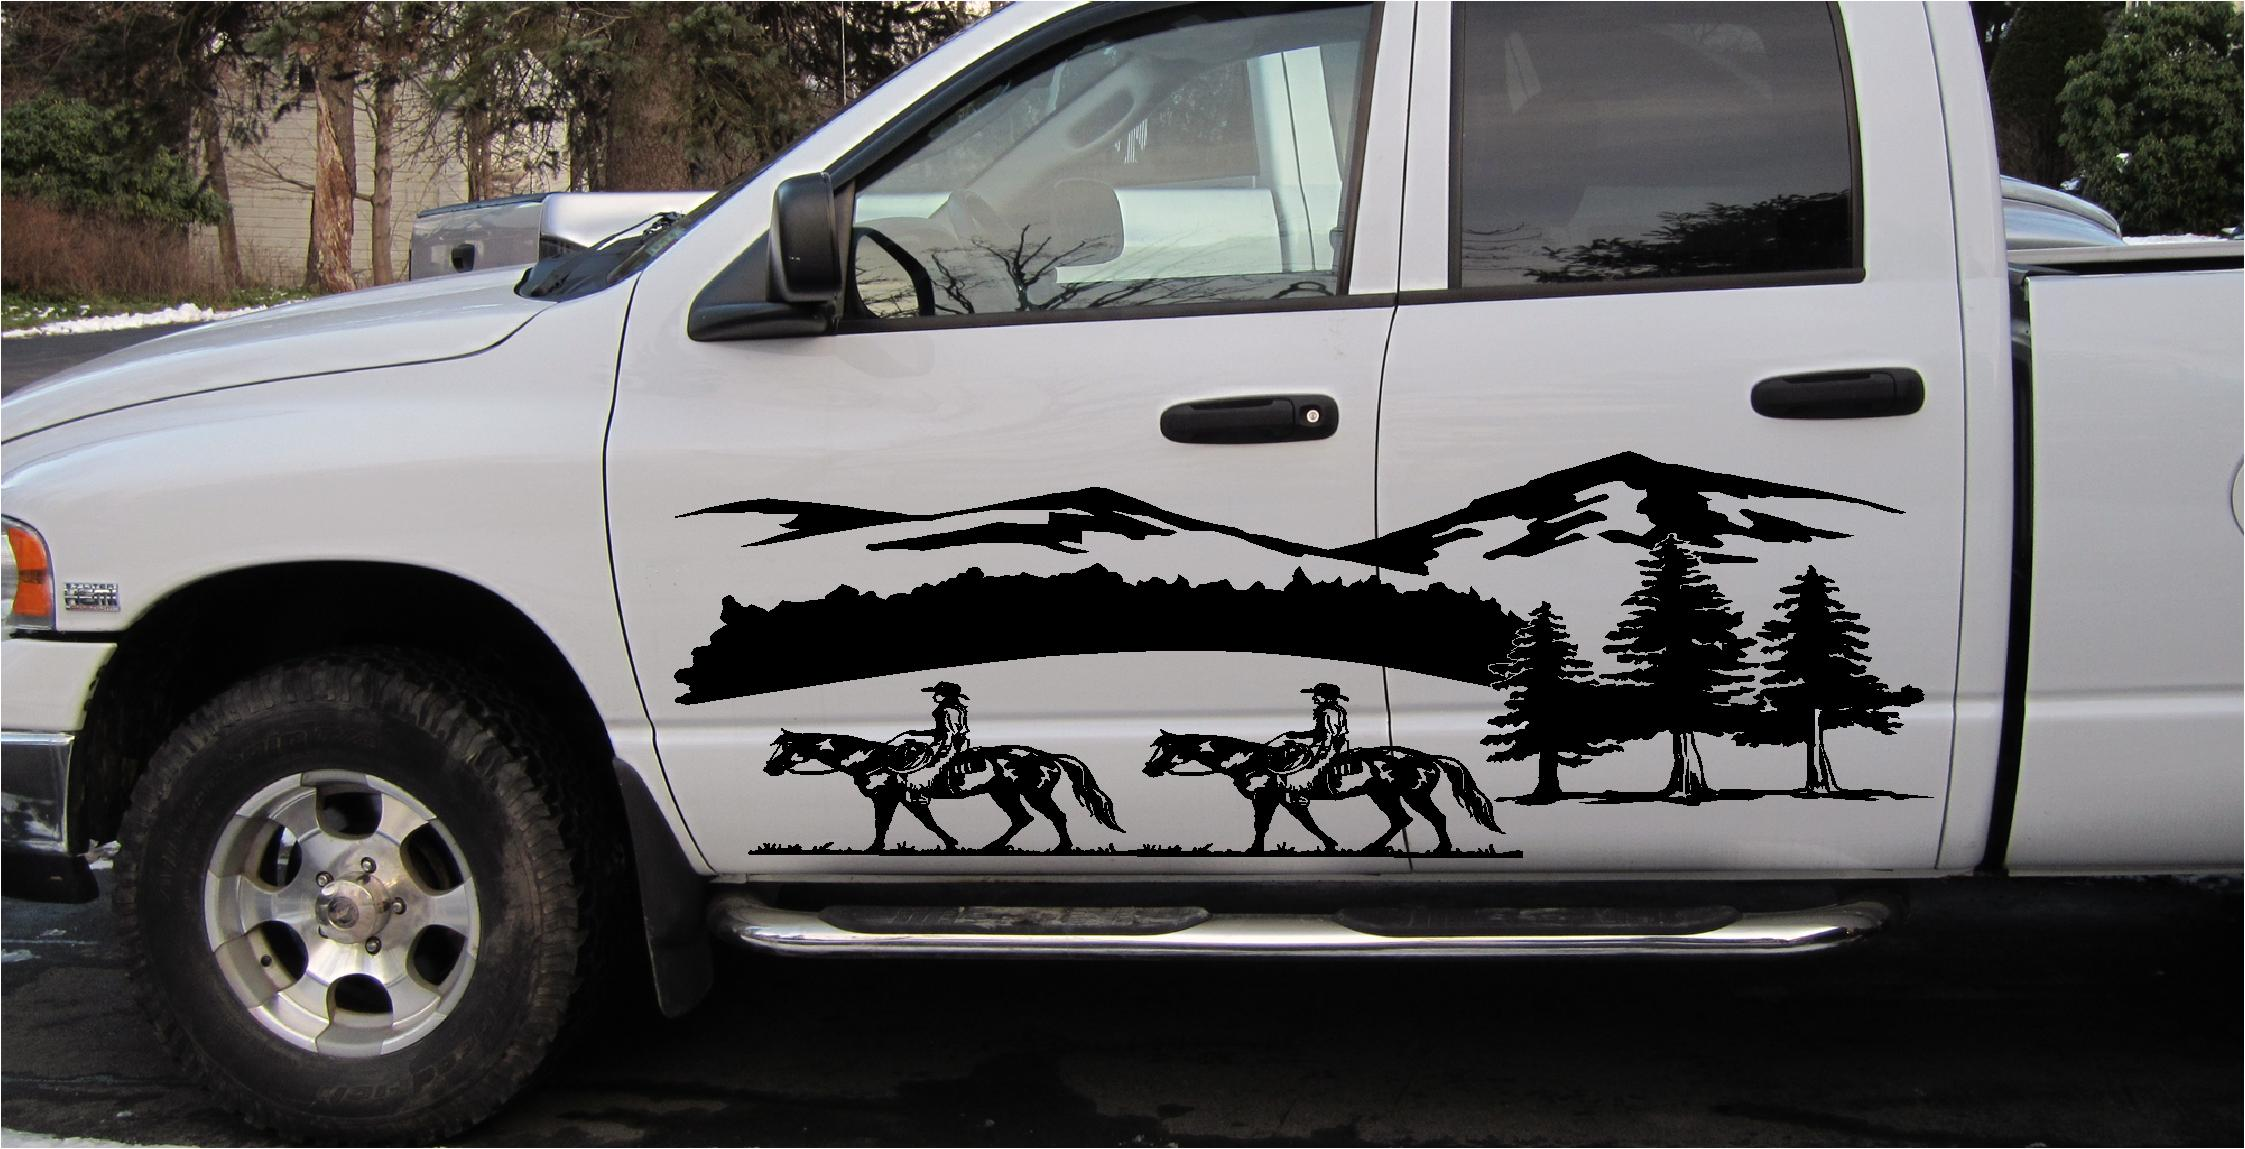 Horse Horses Cowboy Mountains Scenery Decal Decals